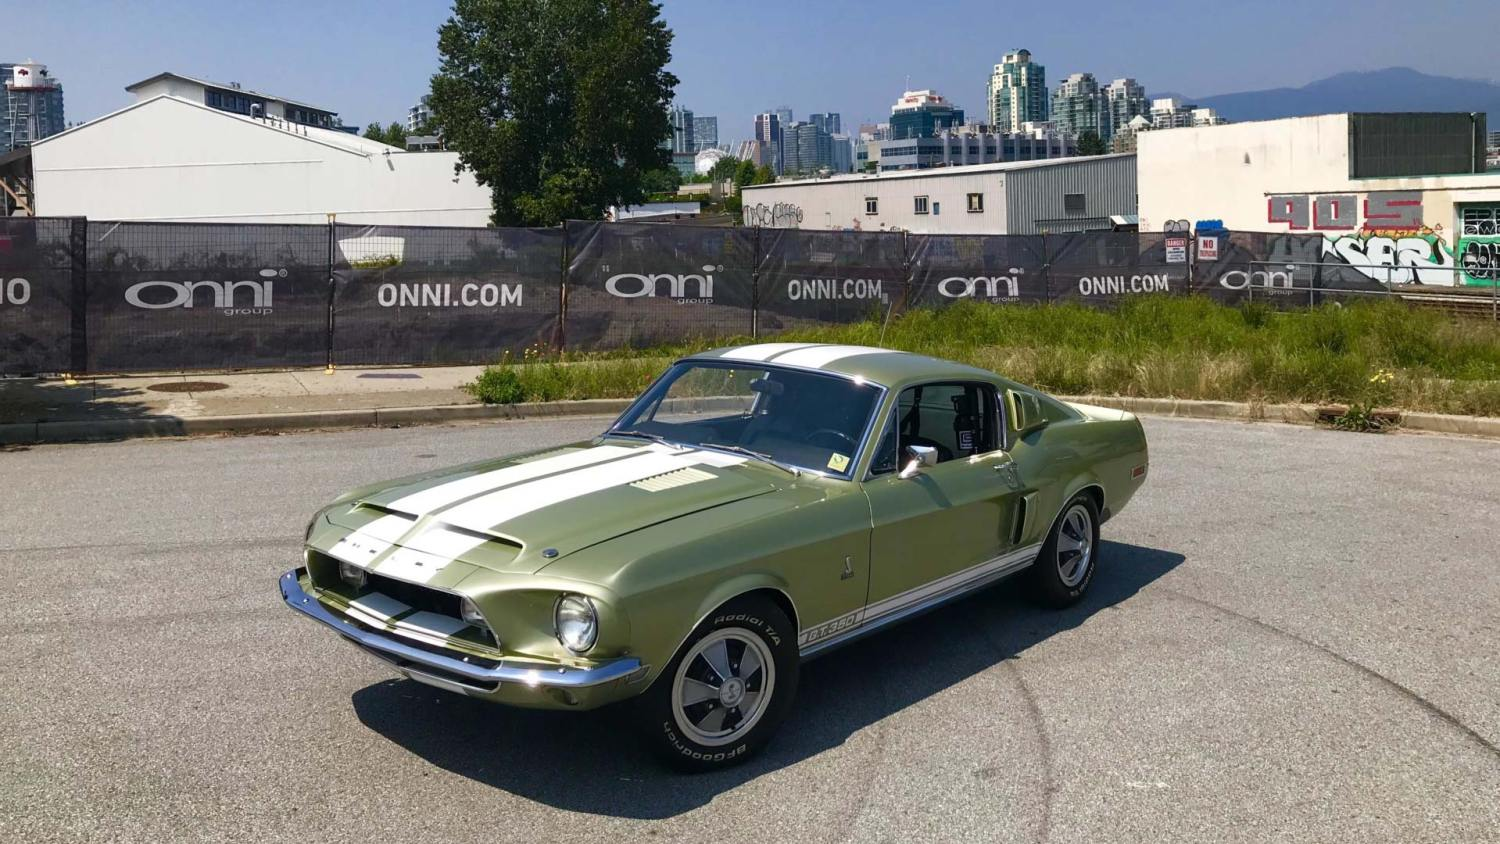 Golden oldie: restored 1968 Shelby Mustang GT350 up for